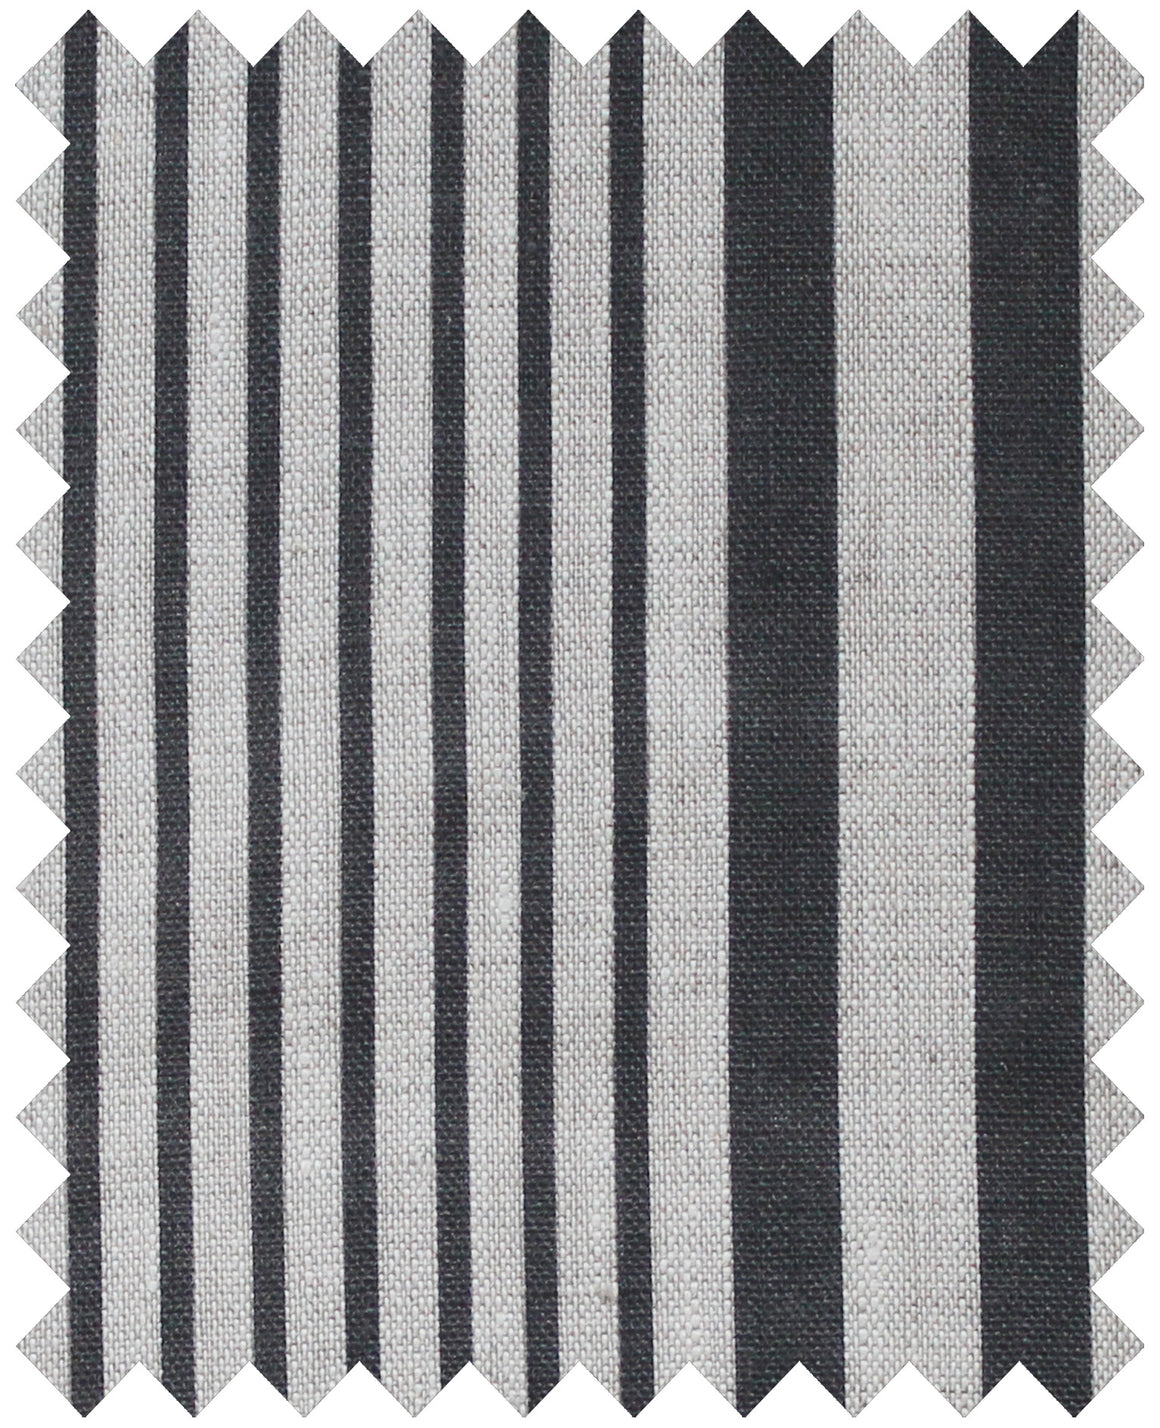 Stanley Stripe Soot - Natural Linen Swatch